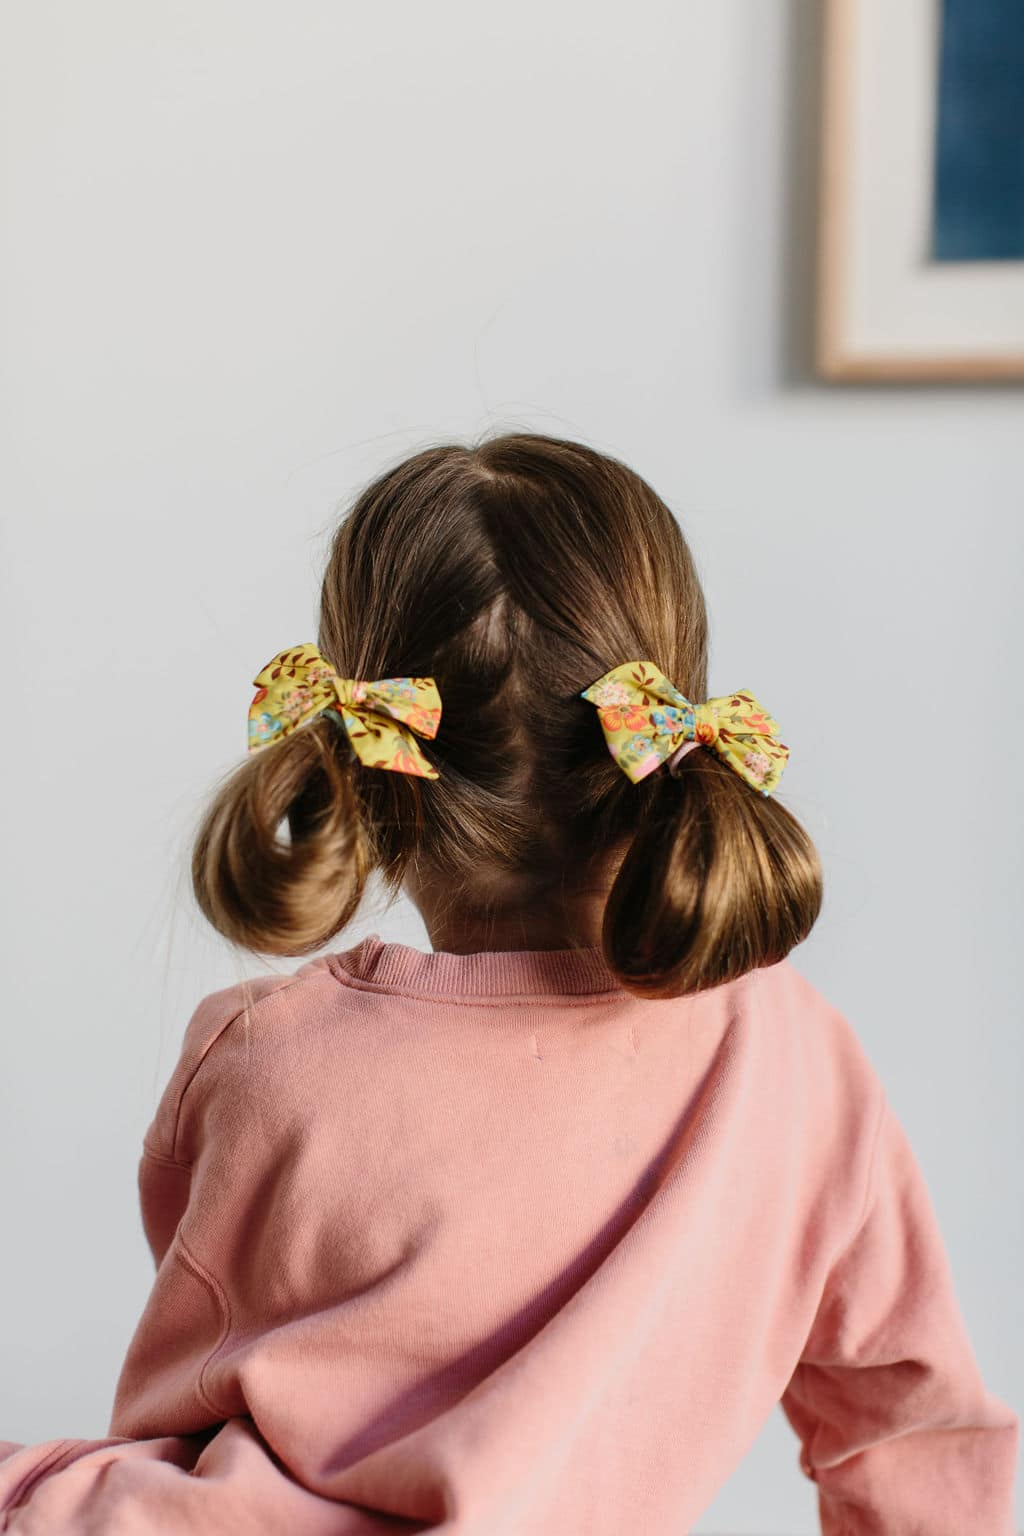 10 Easy Hairstyles for Kids: Braids, Buns, and Wavy Hair — The